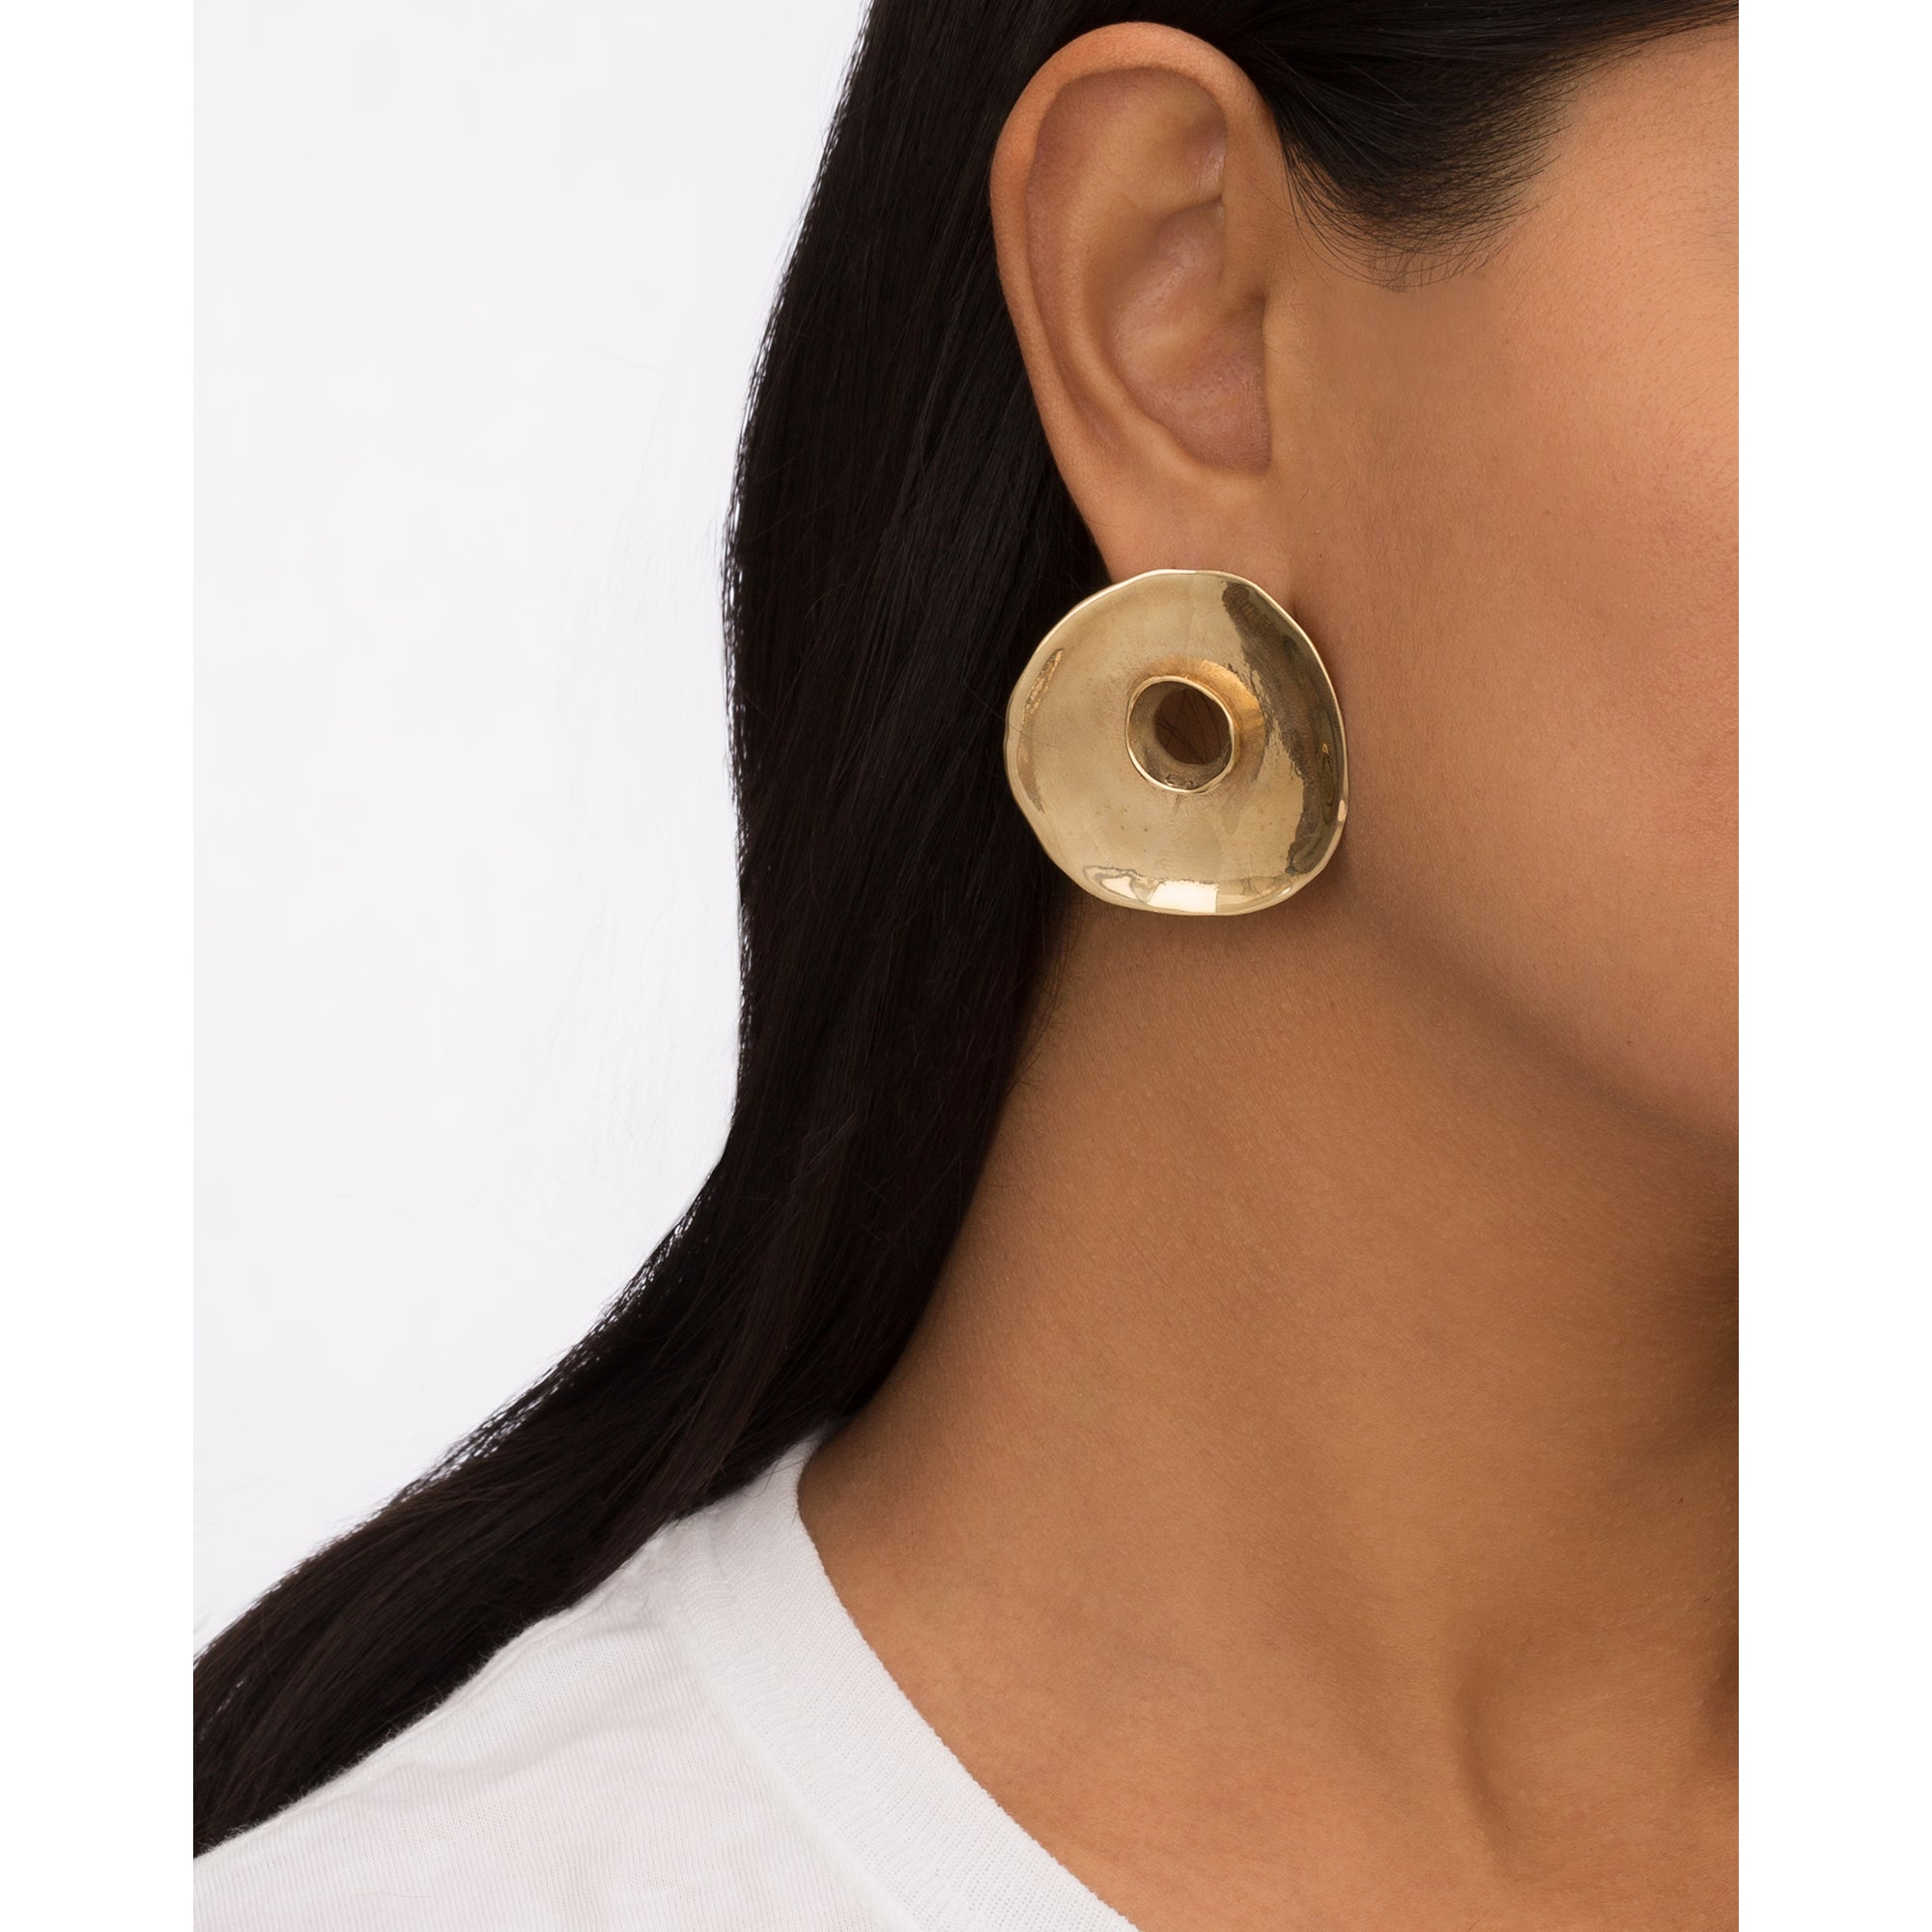 Brass Rosa Earrings by Ariana Boussard-Reifel